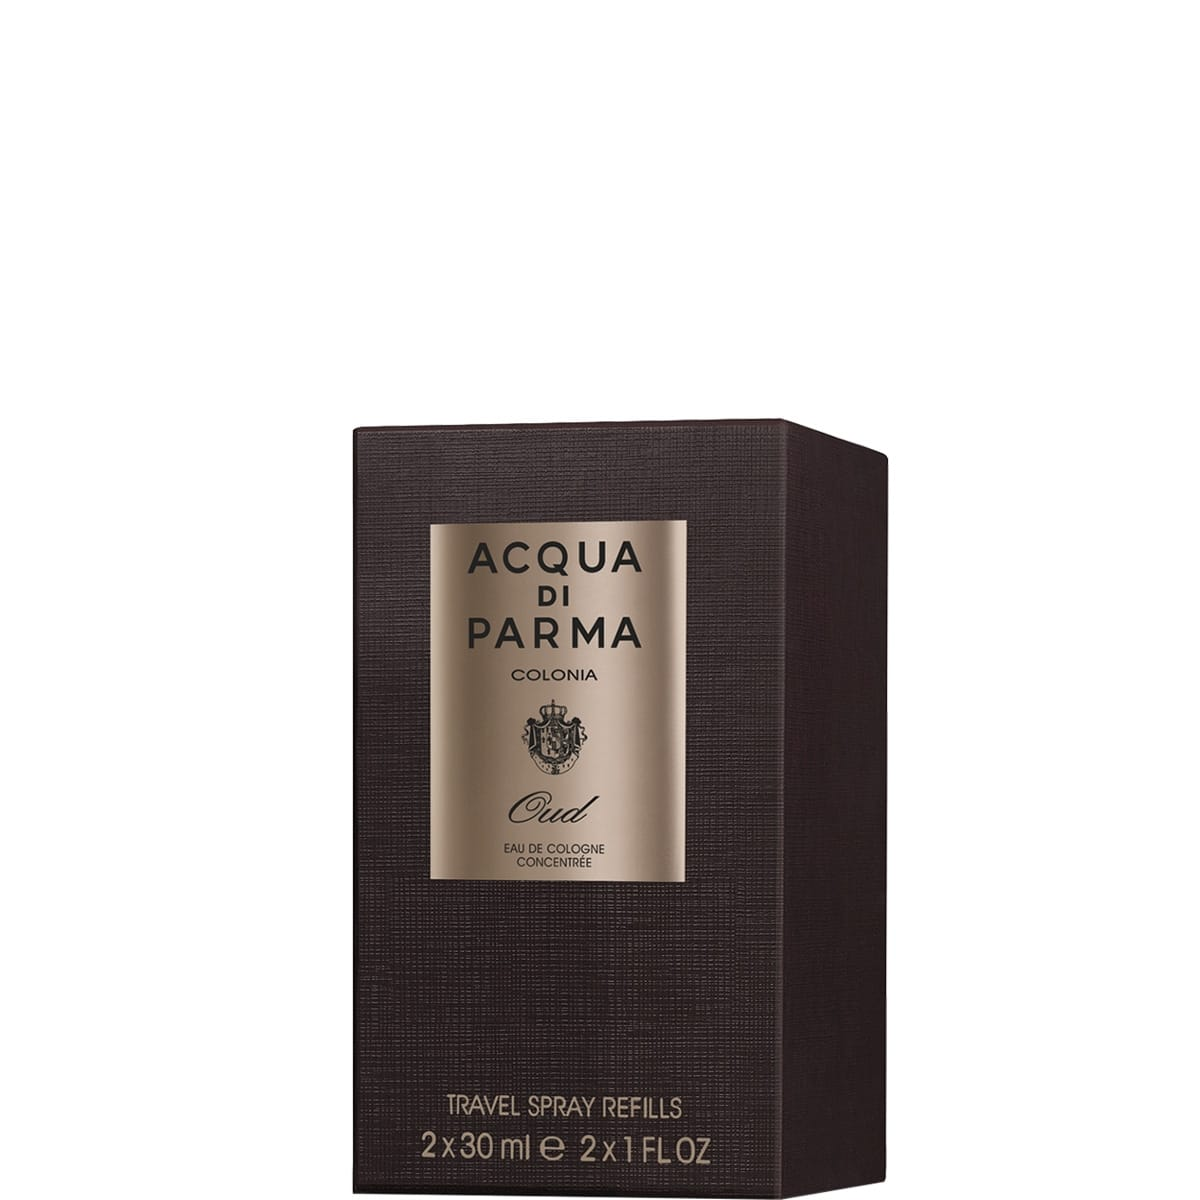 colonia oud eau de cologne concentr e 2 x 30 ml acqua di parma incenza. Black Bedroom Furniture Sets. Home Design Ideas